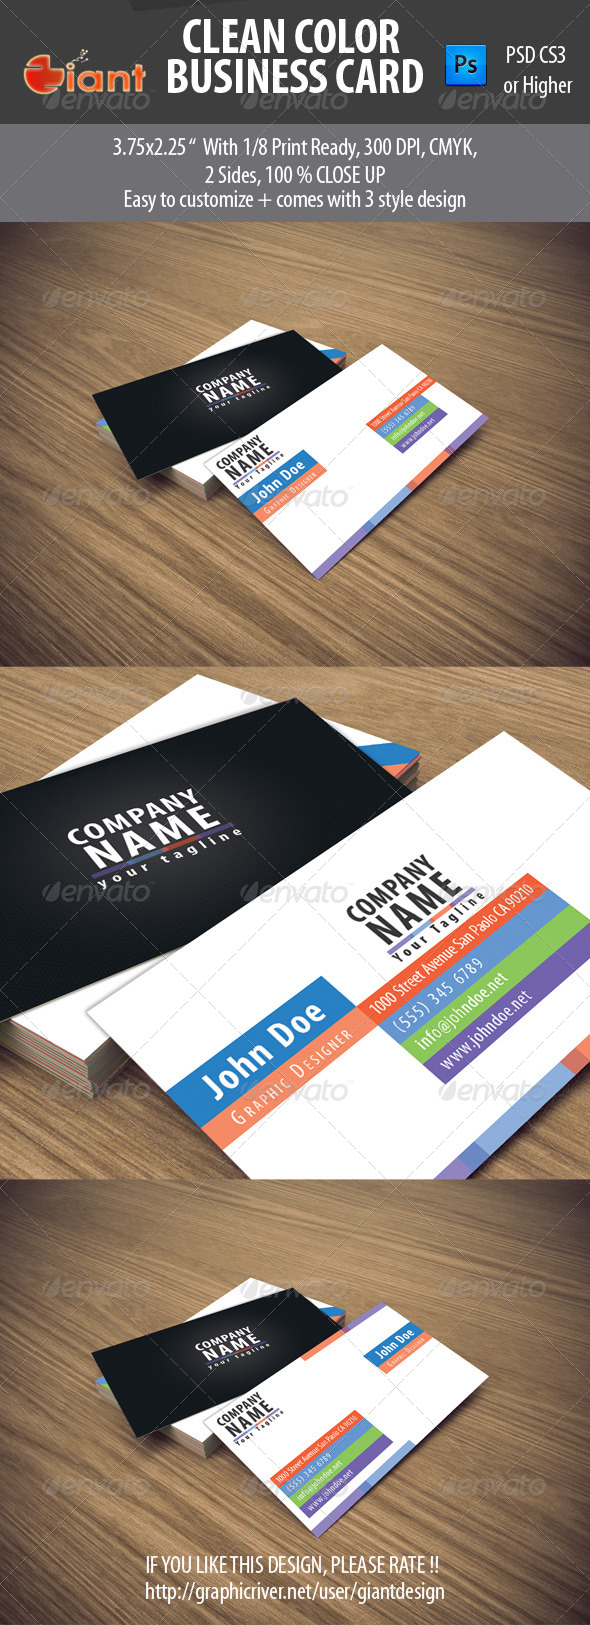 Clean Color Business Card